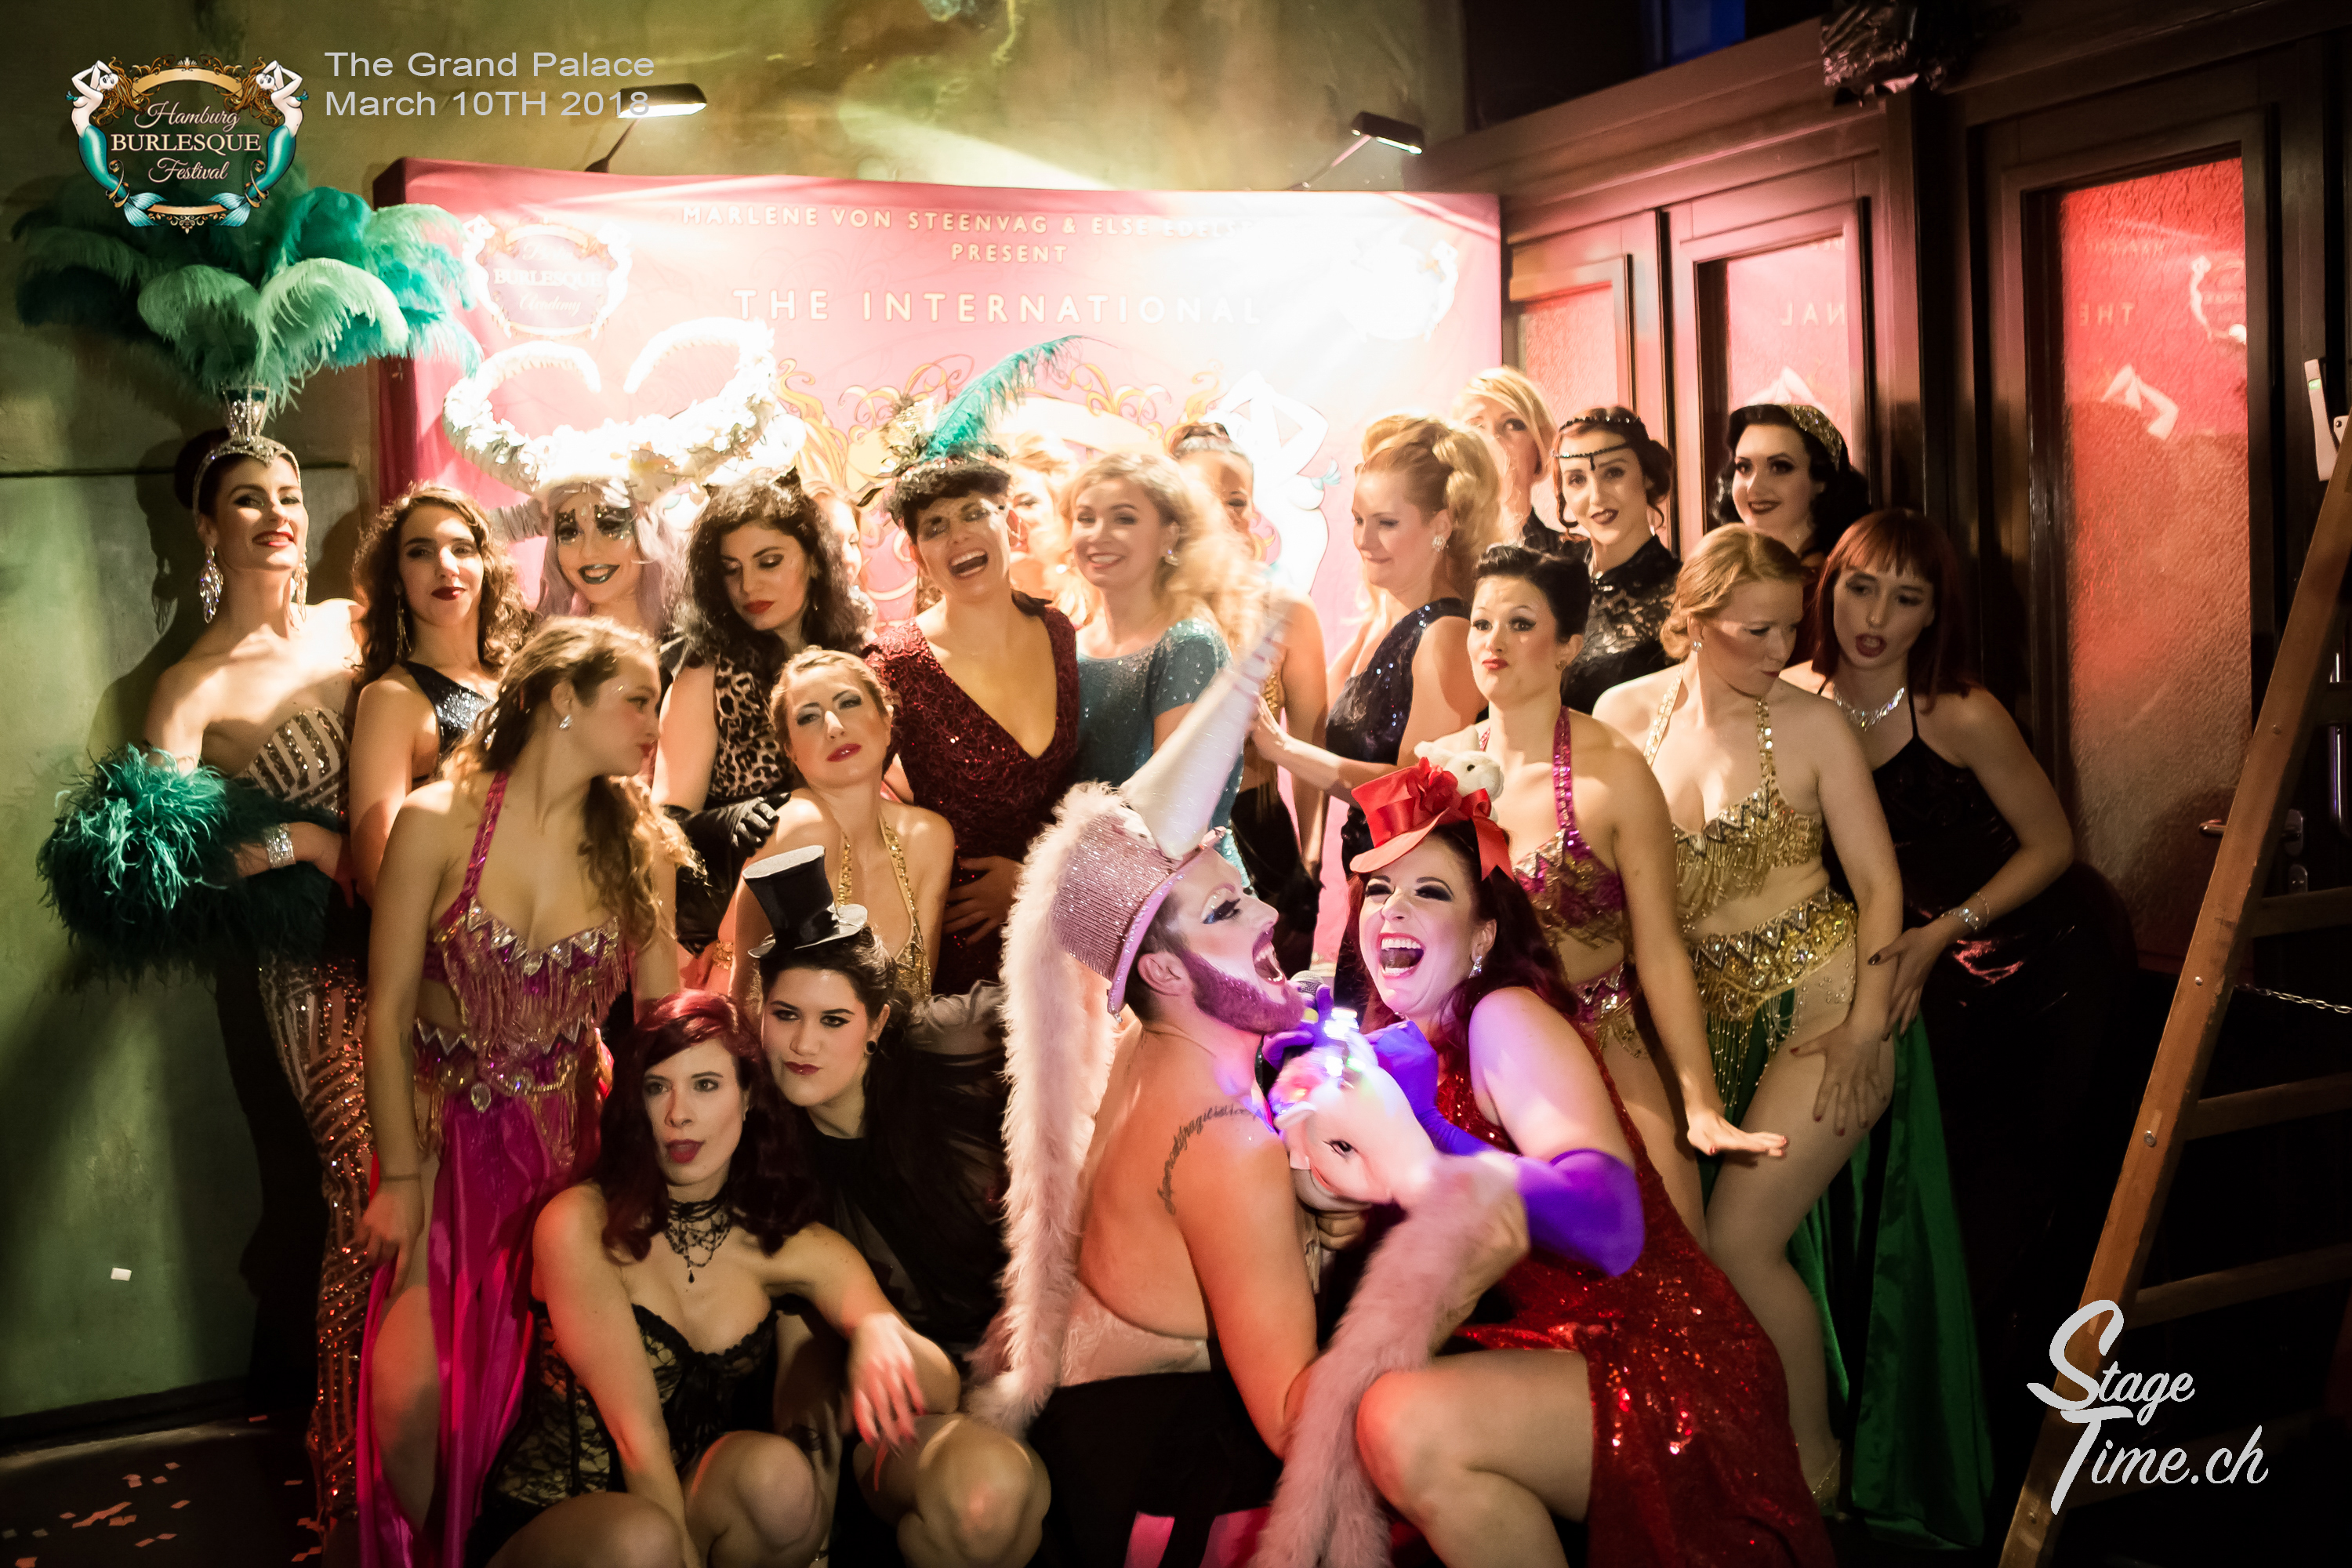 Hamburg_Burlesque_Festival_The_Grand_Palace__📷_Christoph_Gurtner_I_stagetime.ch-155